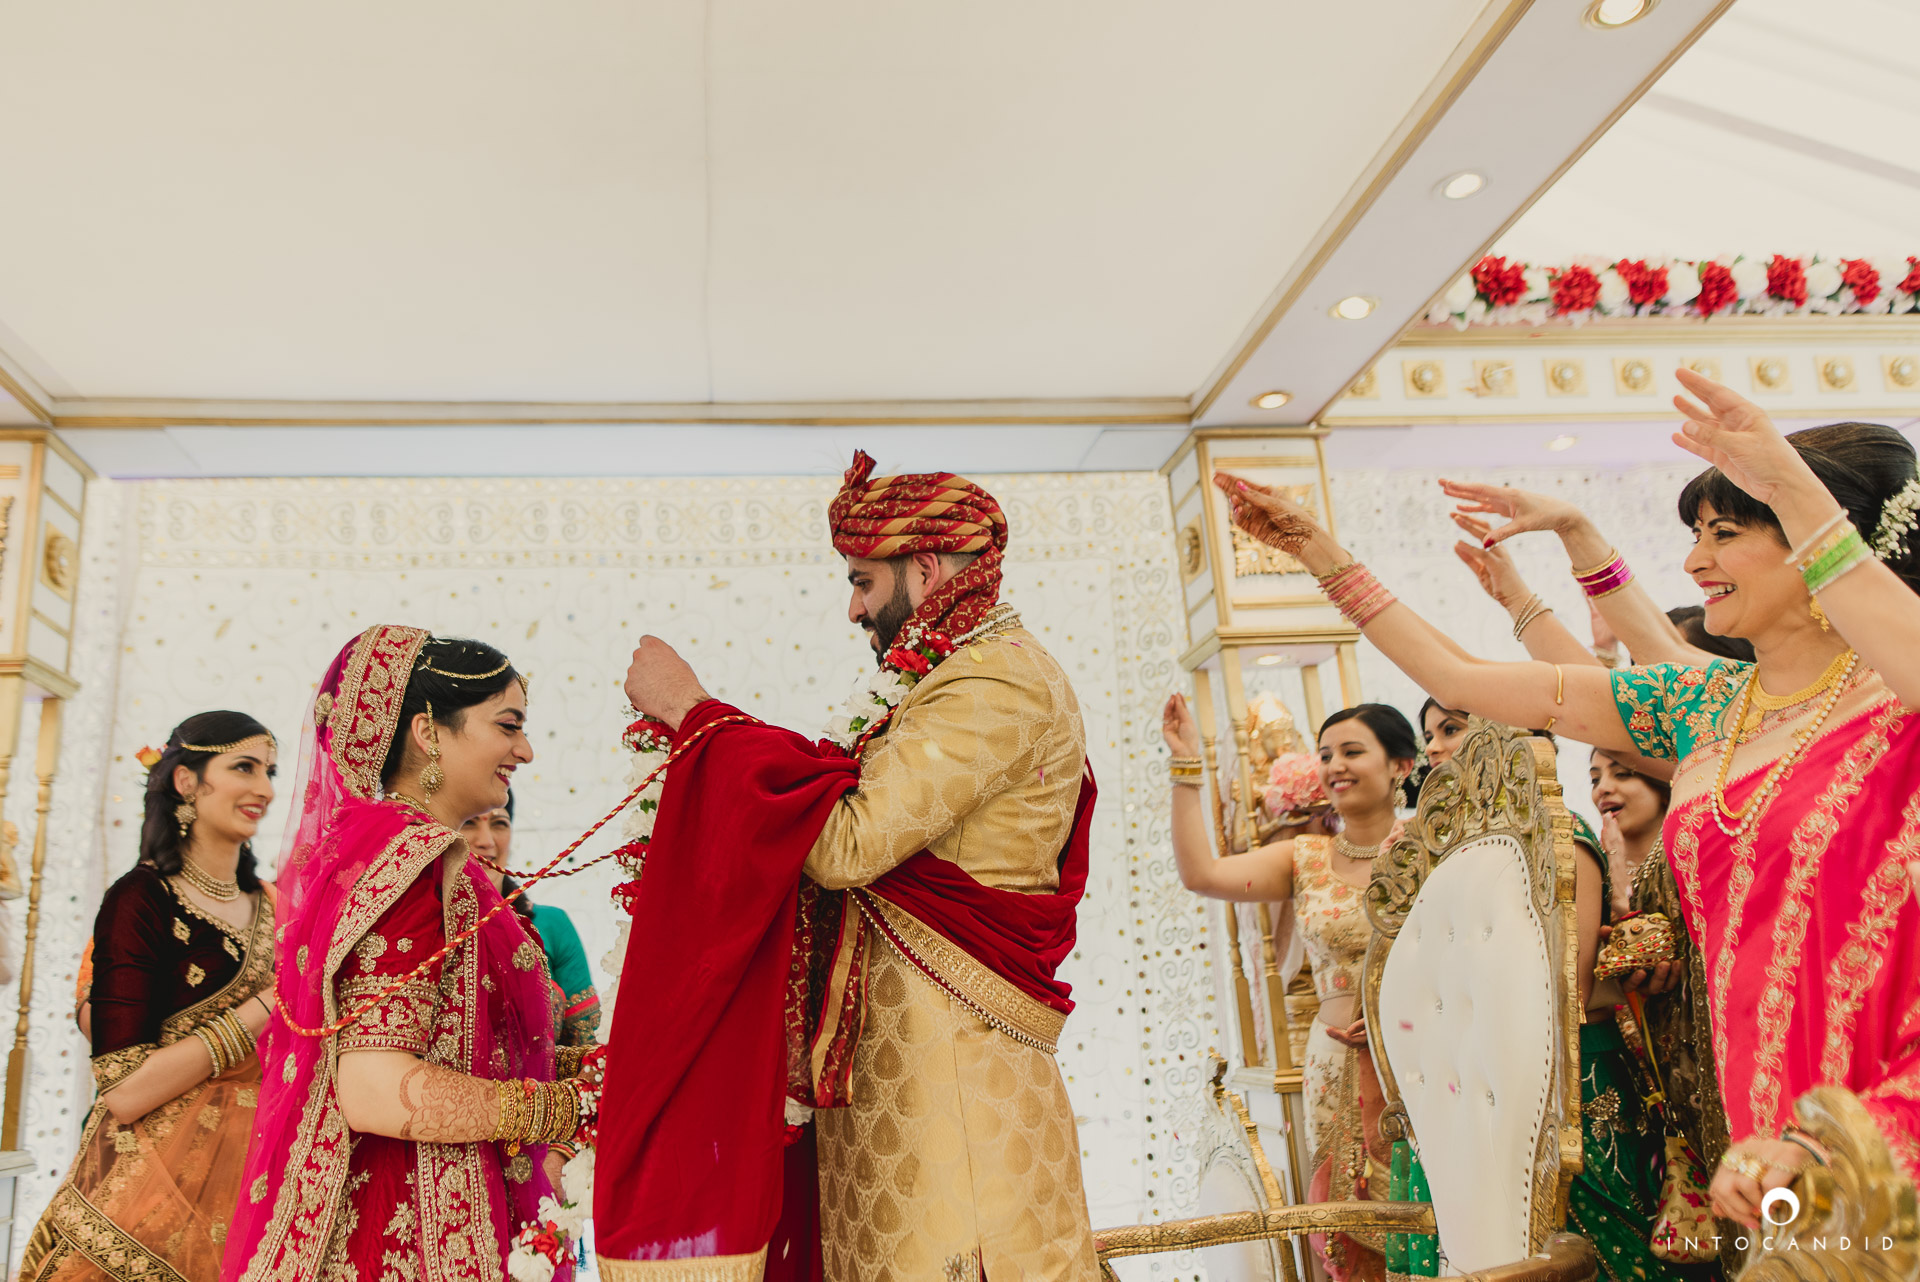 London_Wedding_Photographer_Intocandid_Photography_Ketan & Manasvi_47.JPG